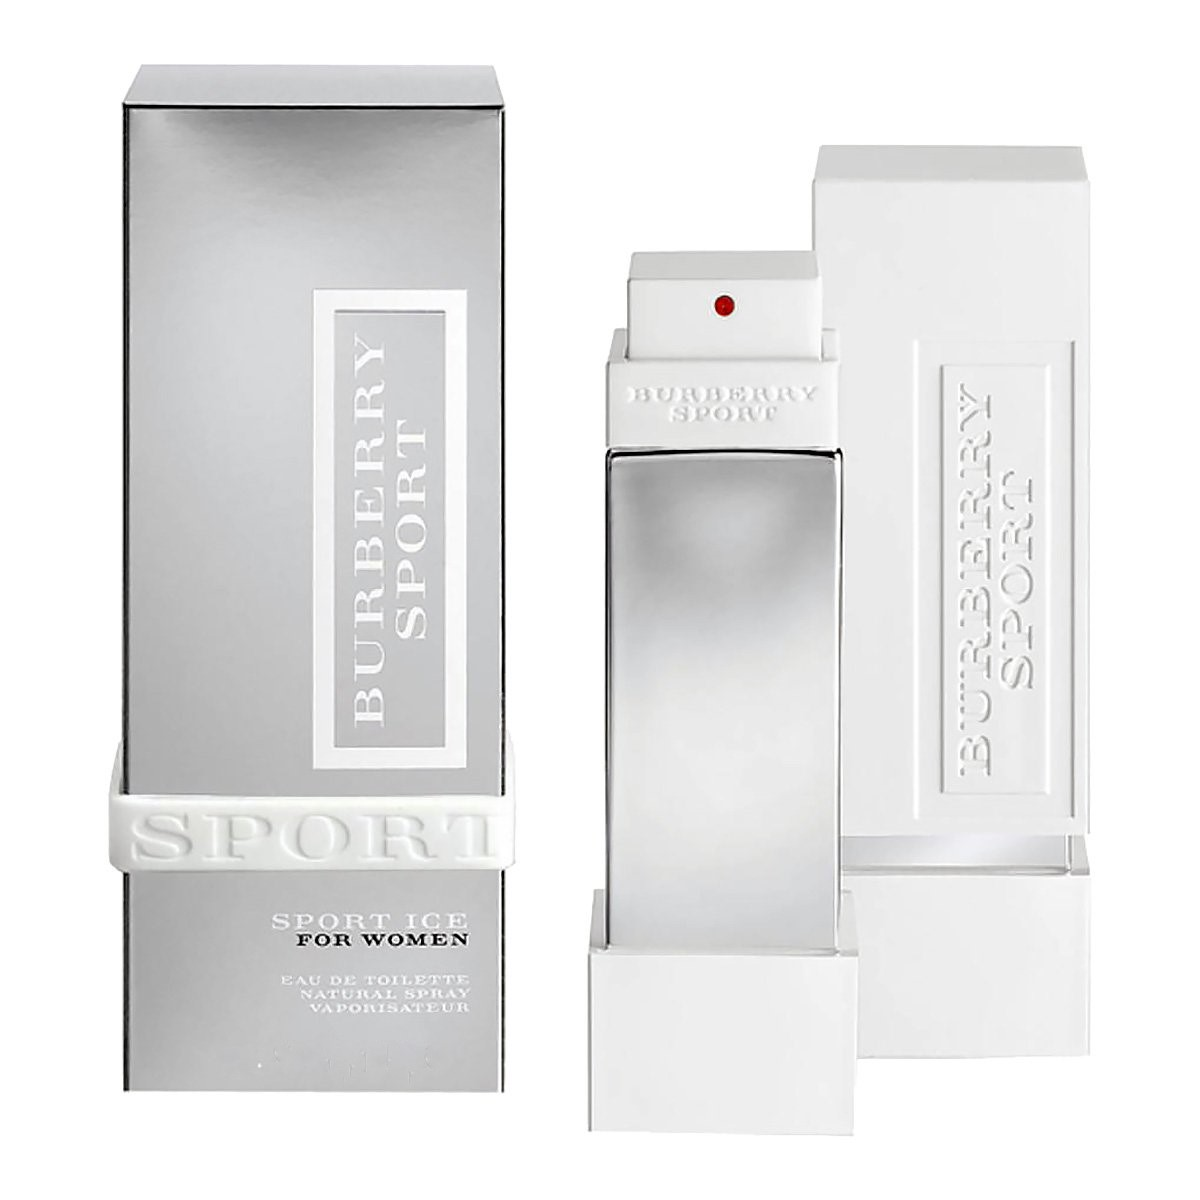 Туалетная вода Burberry Sport Ice For Women 50ml фото